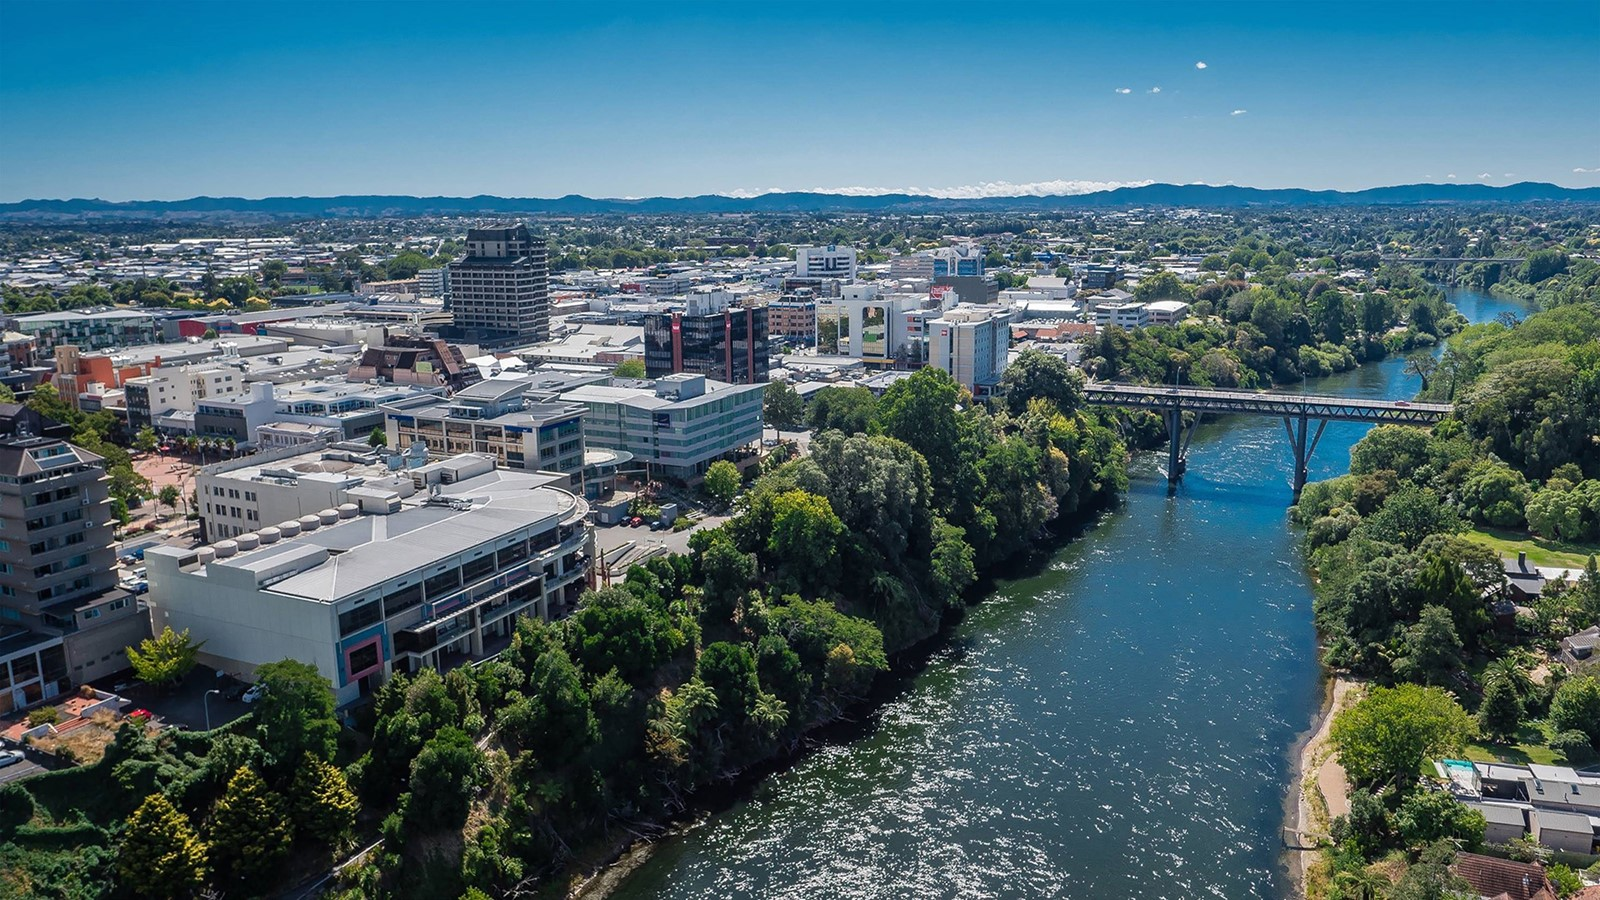 A photograph of central Hamilton and the Waikato River